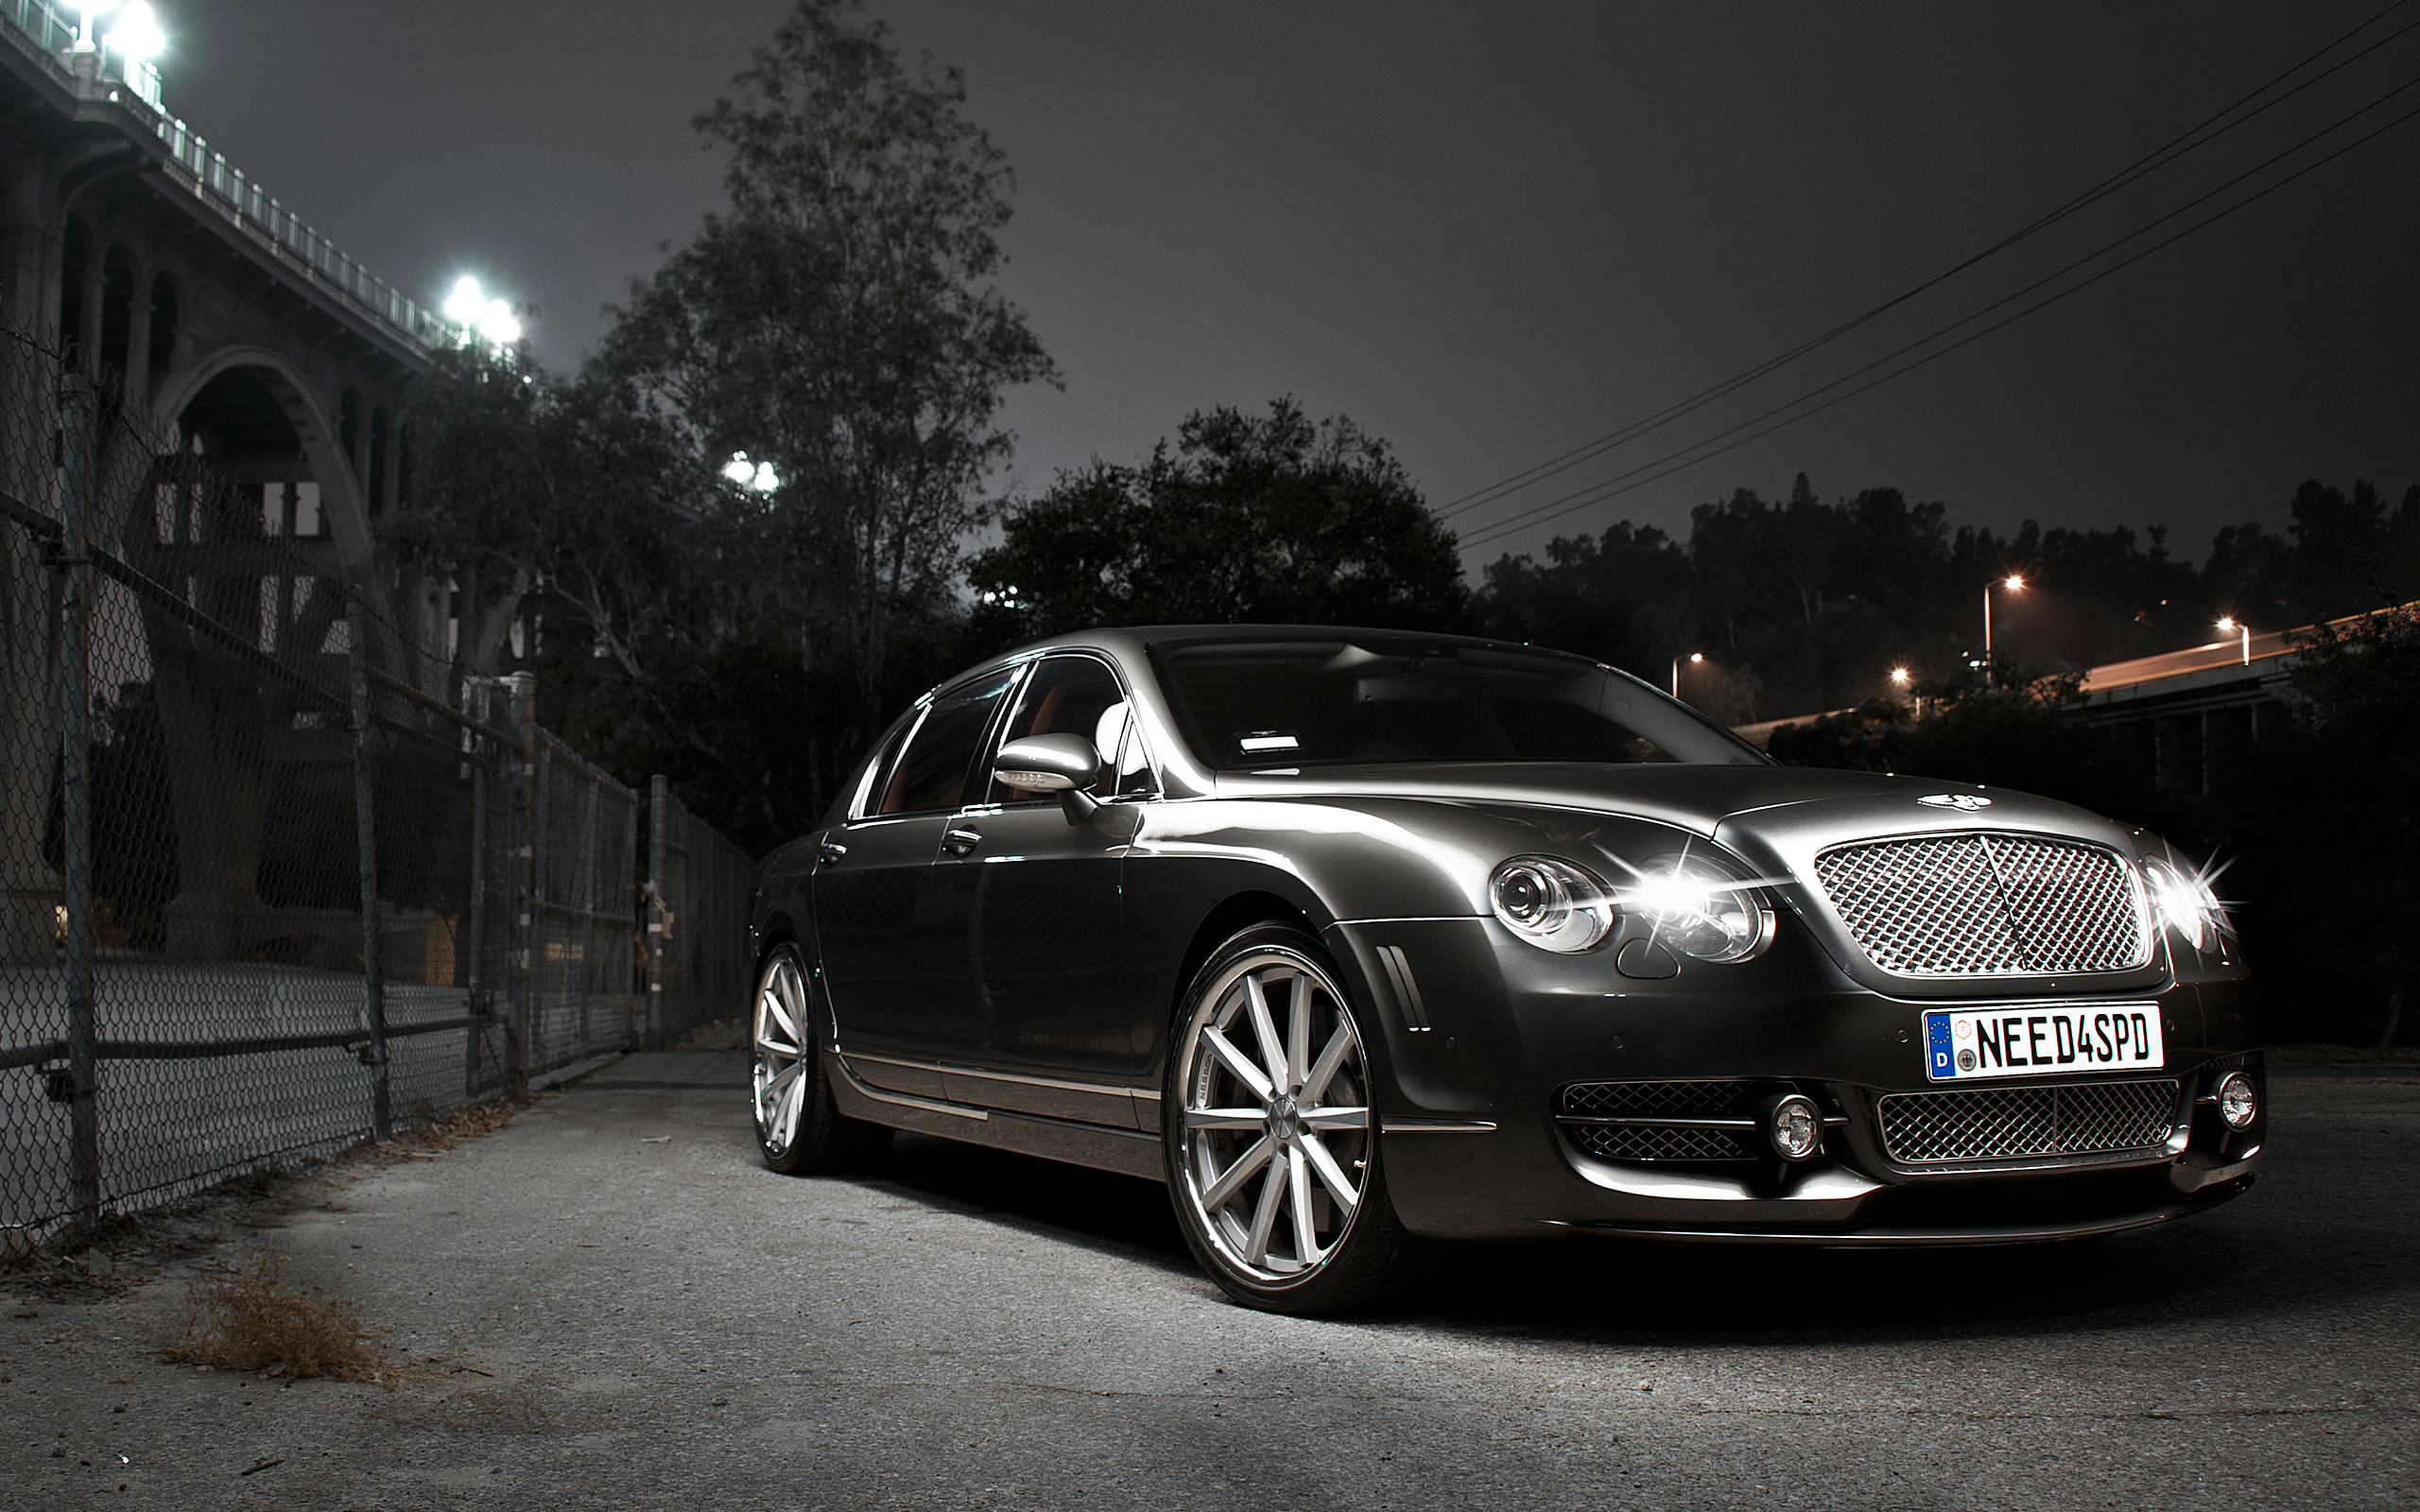 BENTLEY-CONTINENTAL-FLYING-SPUR-wallpaper-wp5803947